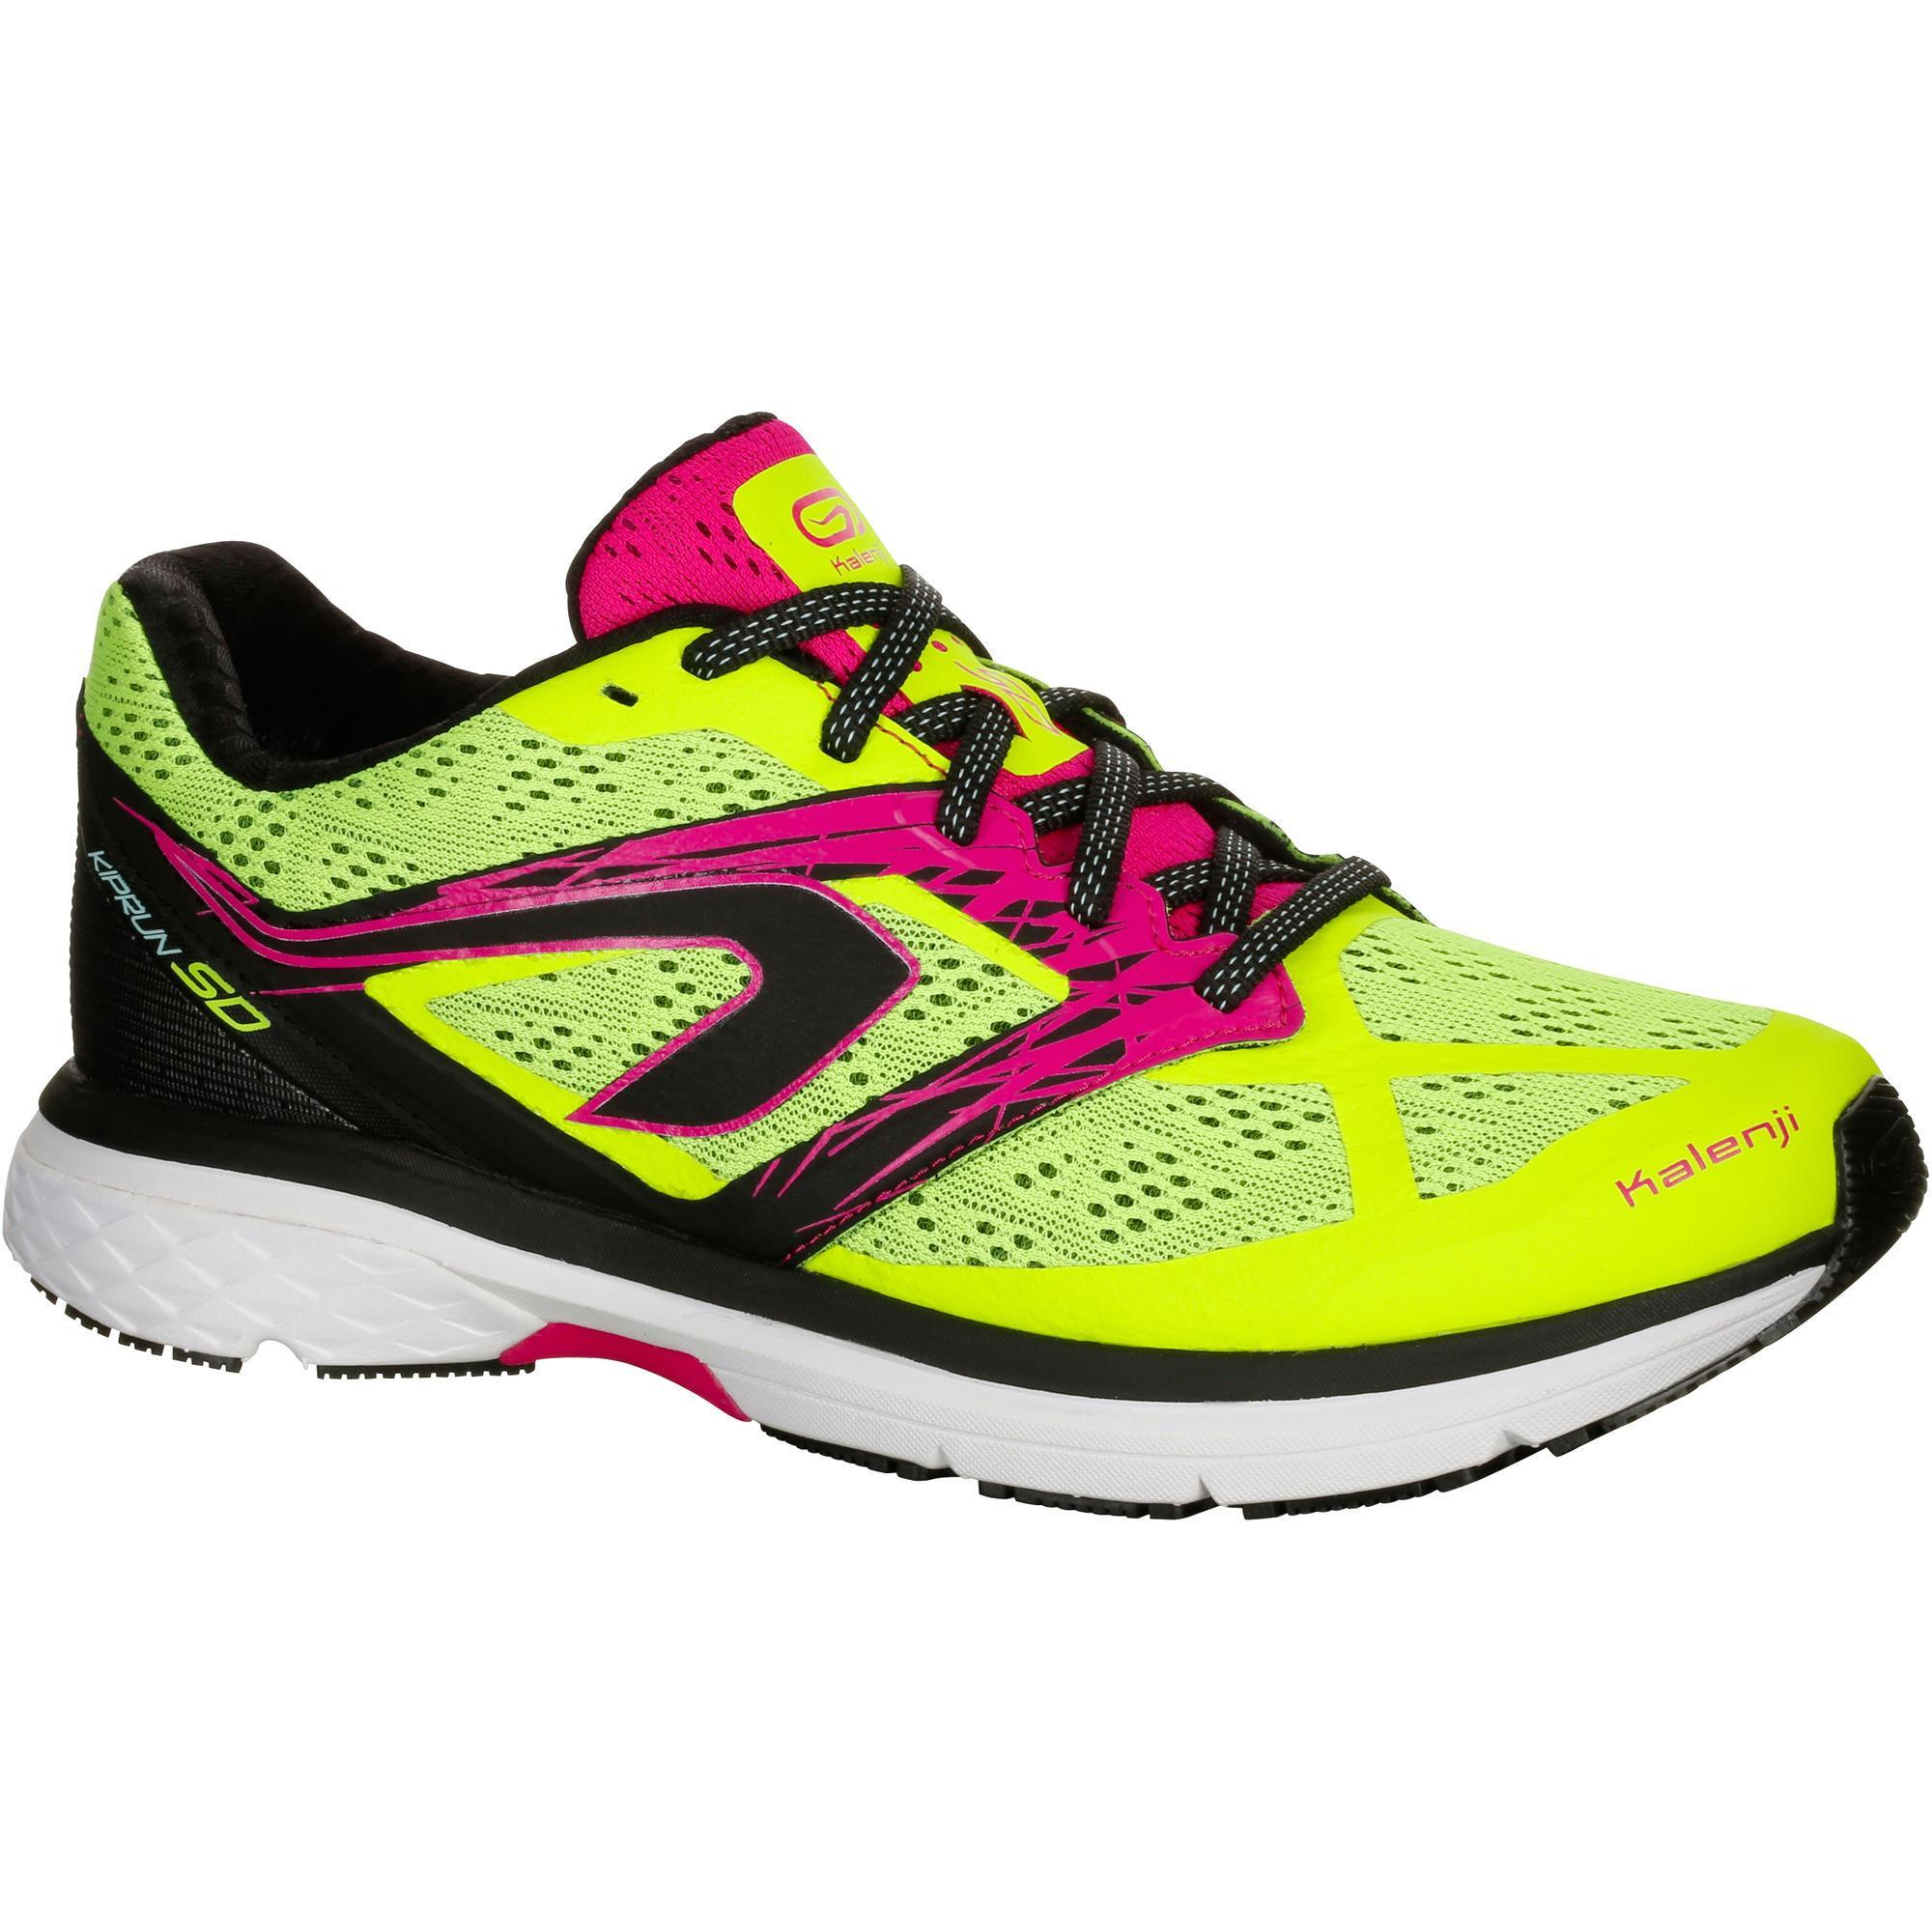 Womens Running Shoes For Supination